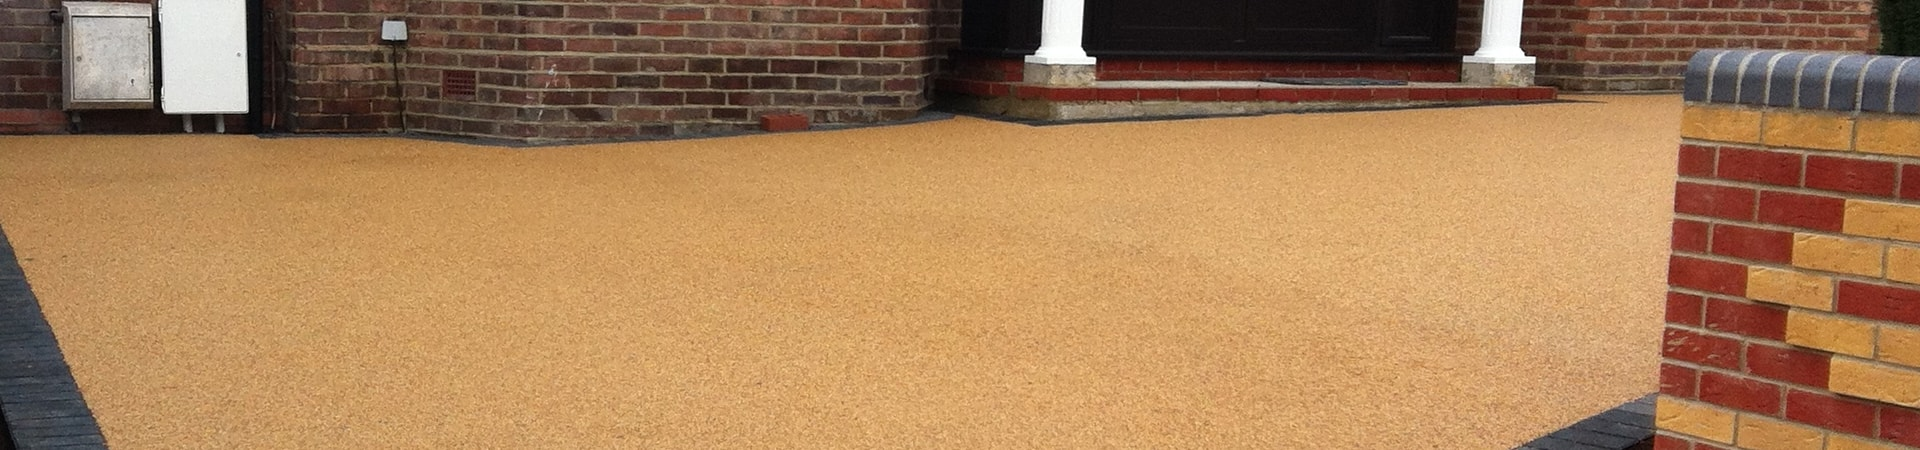 Resin driveways in london and the South East